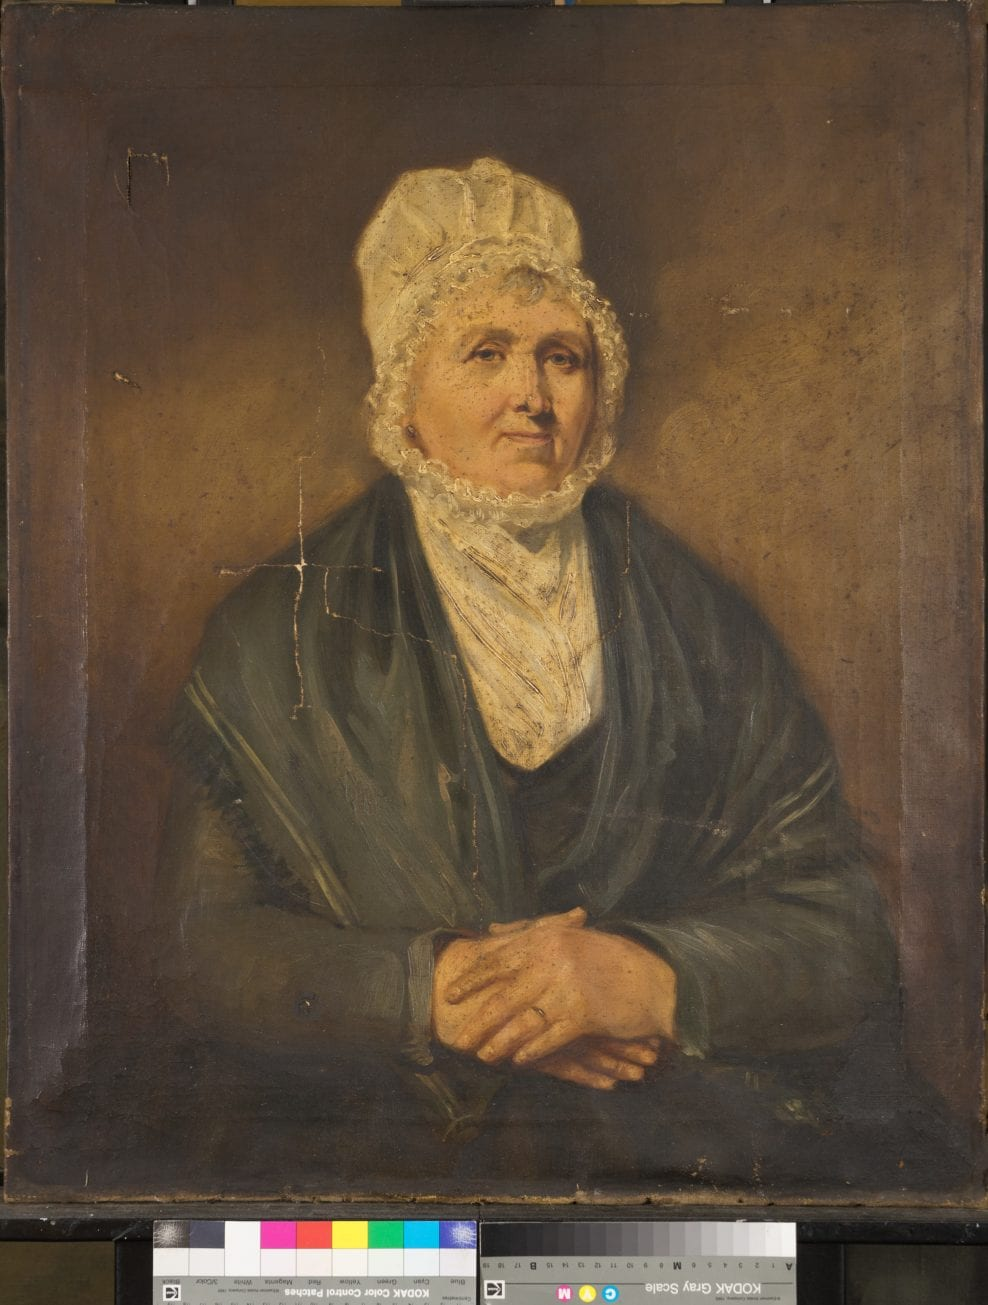 'The Dock Master's Wife' by unknown artist (c. 1870) from the Hull Maritime Musem. Oil on canvas. Conservation was carried out in 2019 and was funded by the National Lottery Heritage Fund as part of the 'Hull: Yorkshire's Maritime City' (HYMC) project